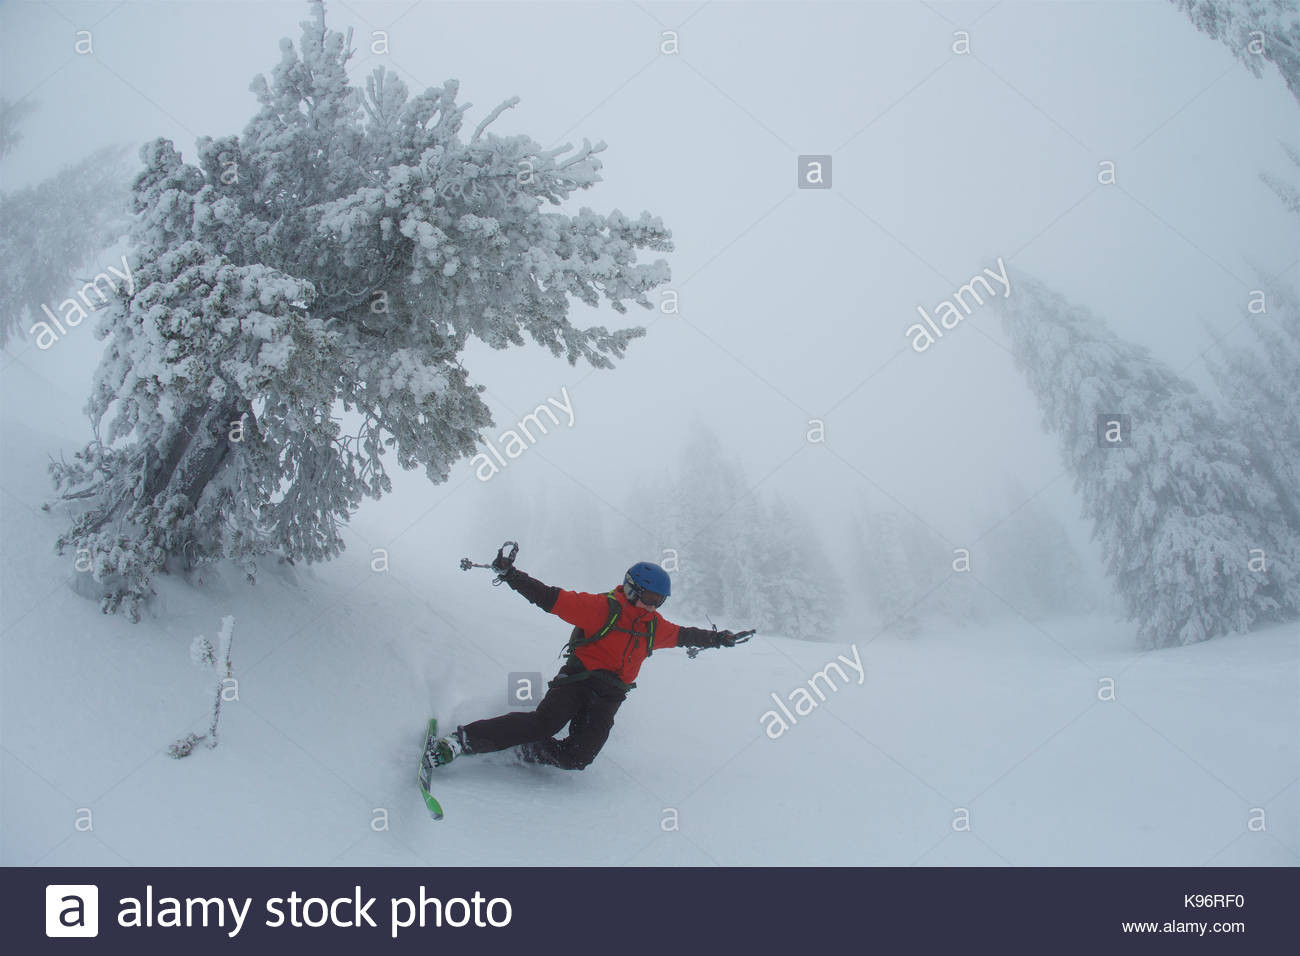 A teen boy falls while skiing in foggy, whiteout conditions near rime covered conifer trees. - Stock Image